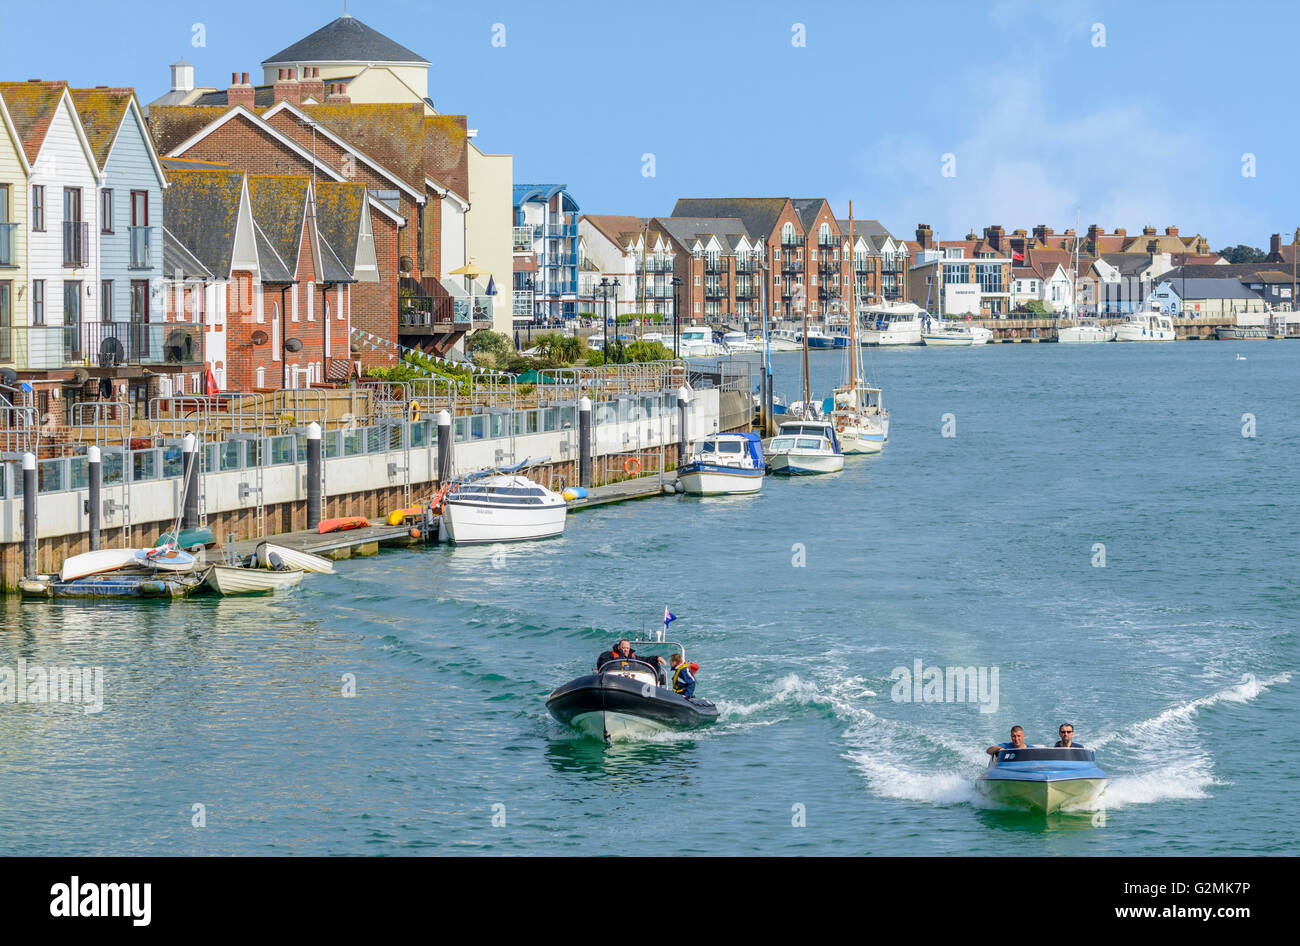 Riverside housing and boats on the River Arun in Littlehampton, West Sussex, England, UK. - Stock Image